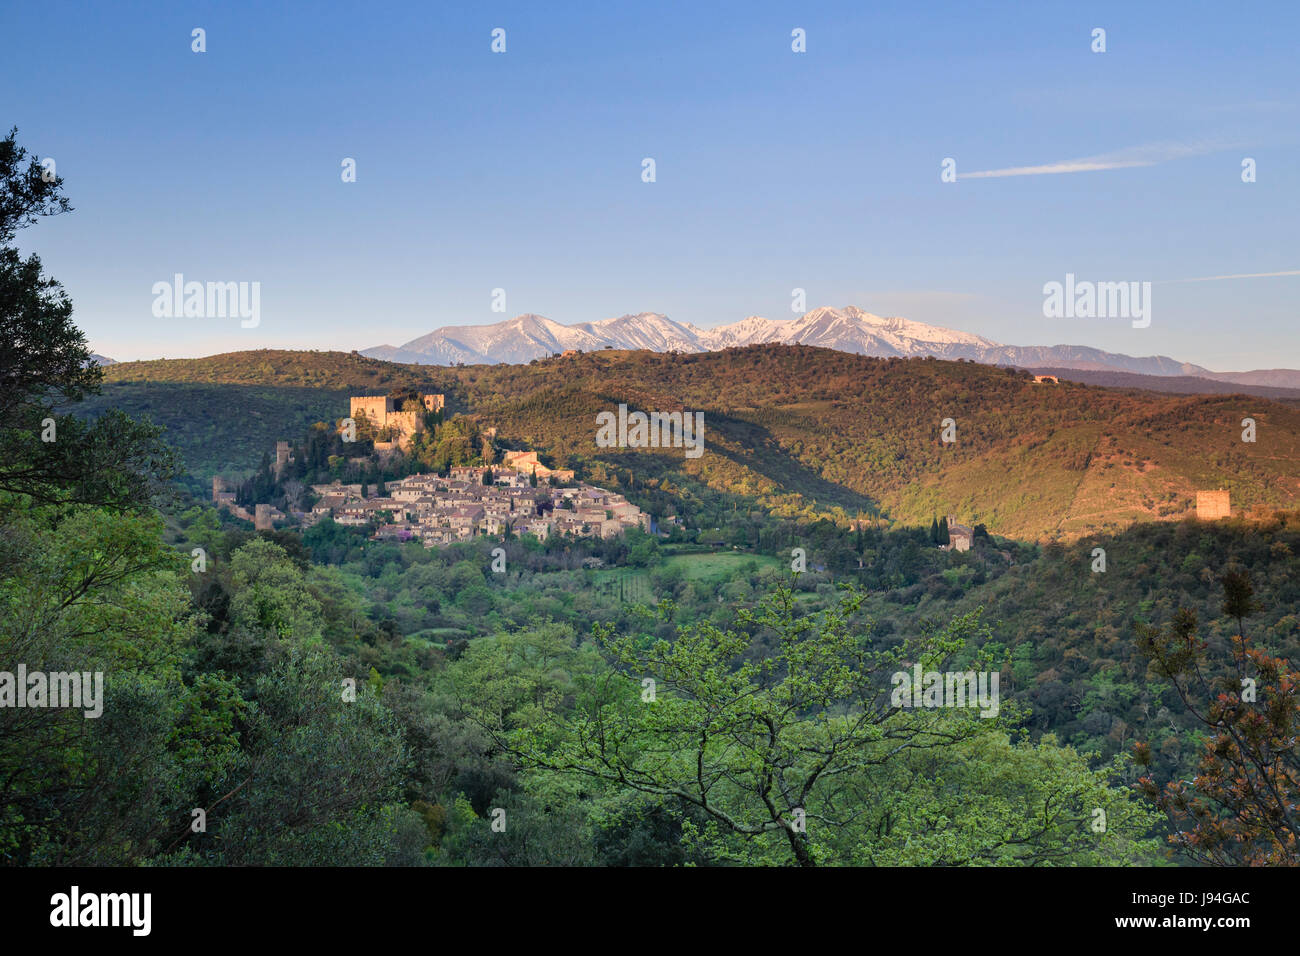 France, Pyrenees Orientales, Castelnou, labelled Les Plus Beaux Villages de France and the Snowy Canigou Peak in - Stock Image